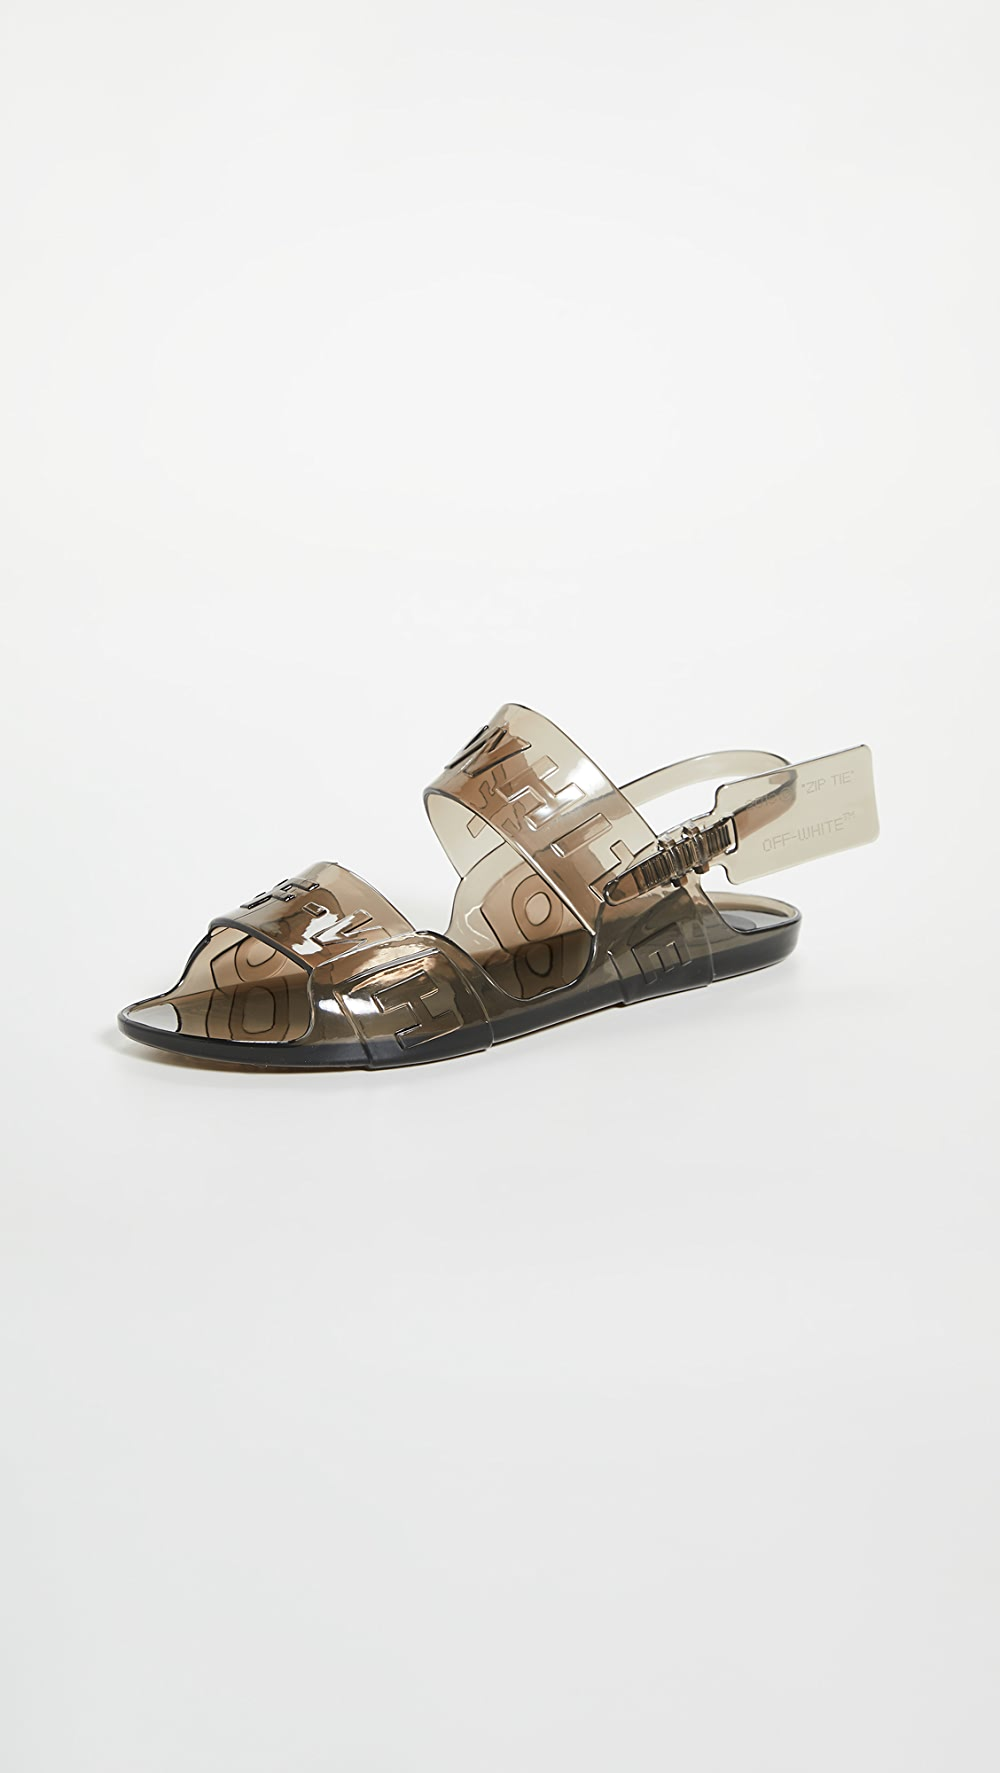 Self-Conscious Off-white - Zip Tie Jelly Sandals Quell Summer Thirst